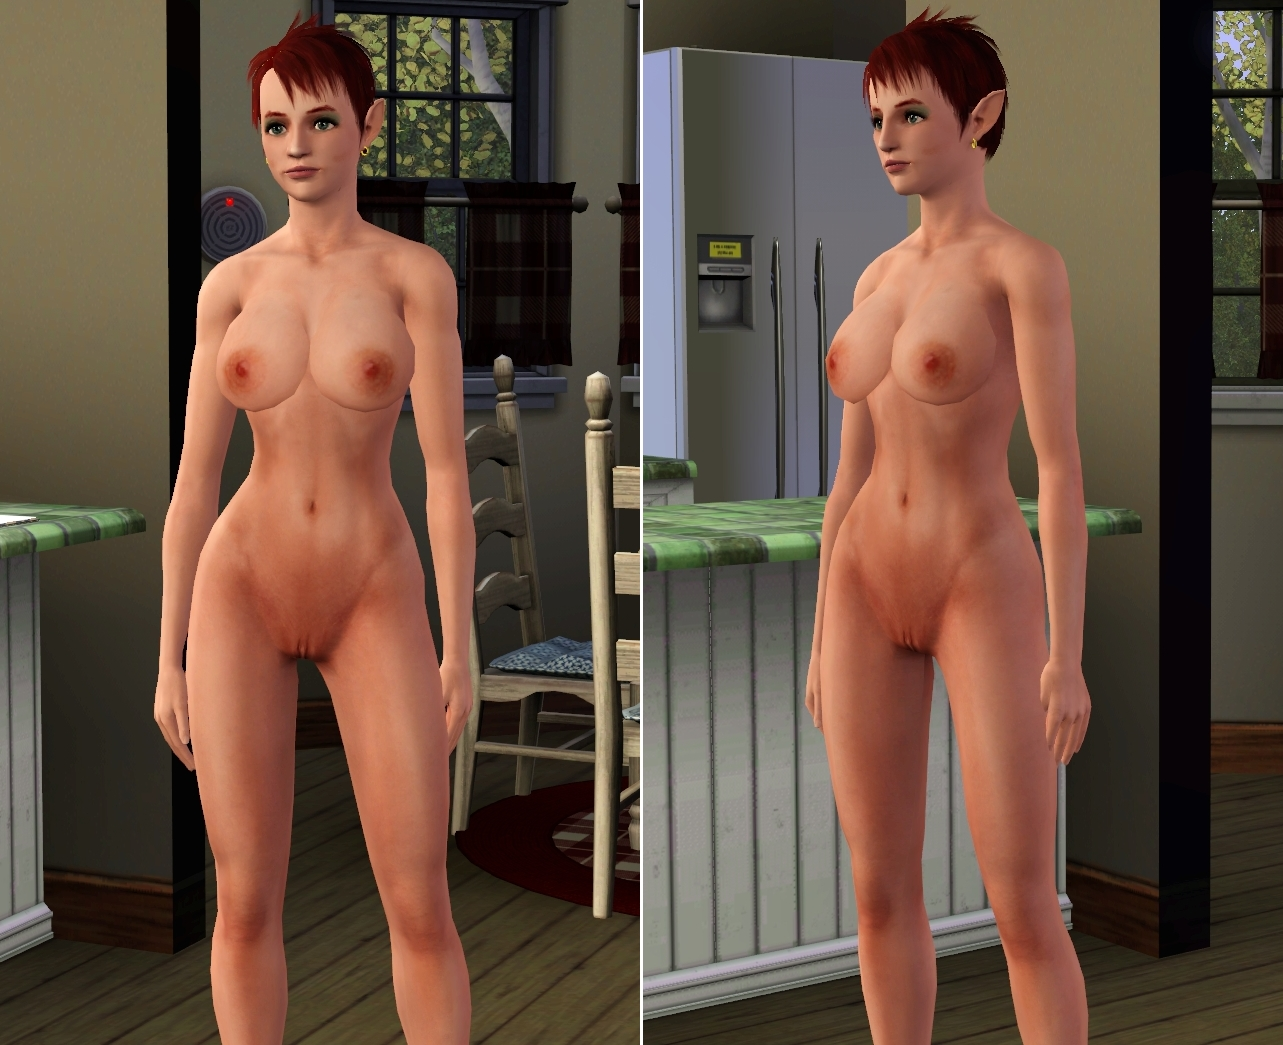 The sims super nude patch naked photo